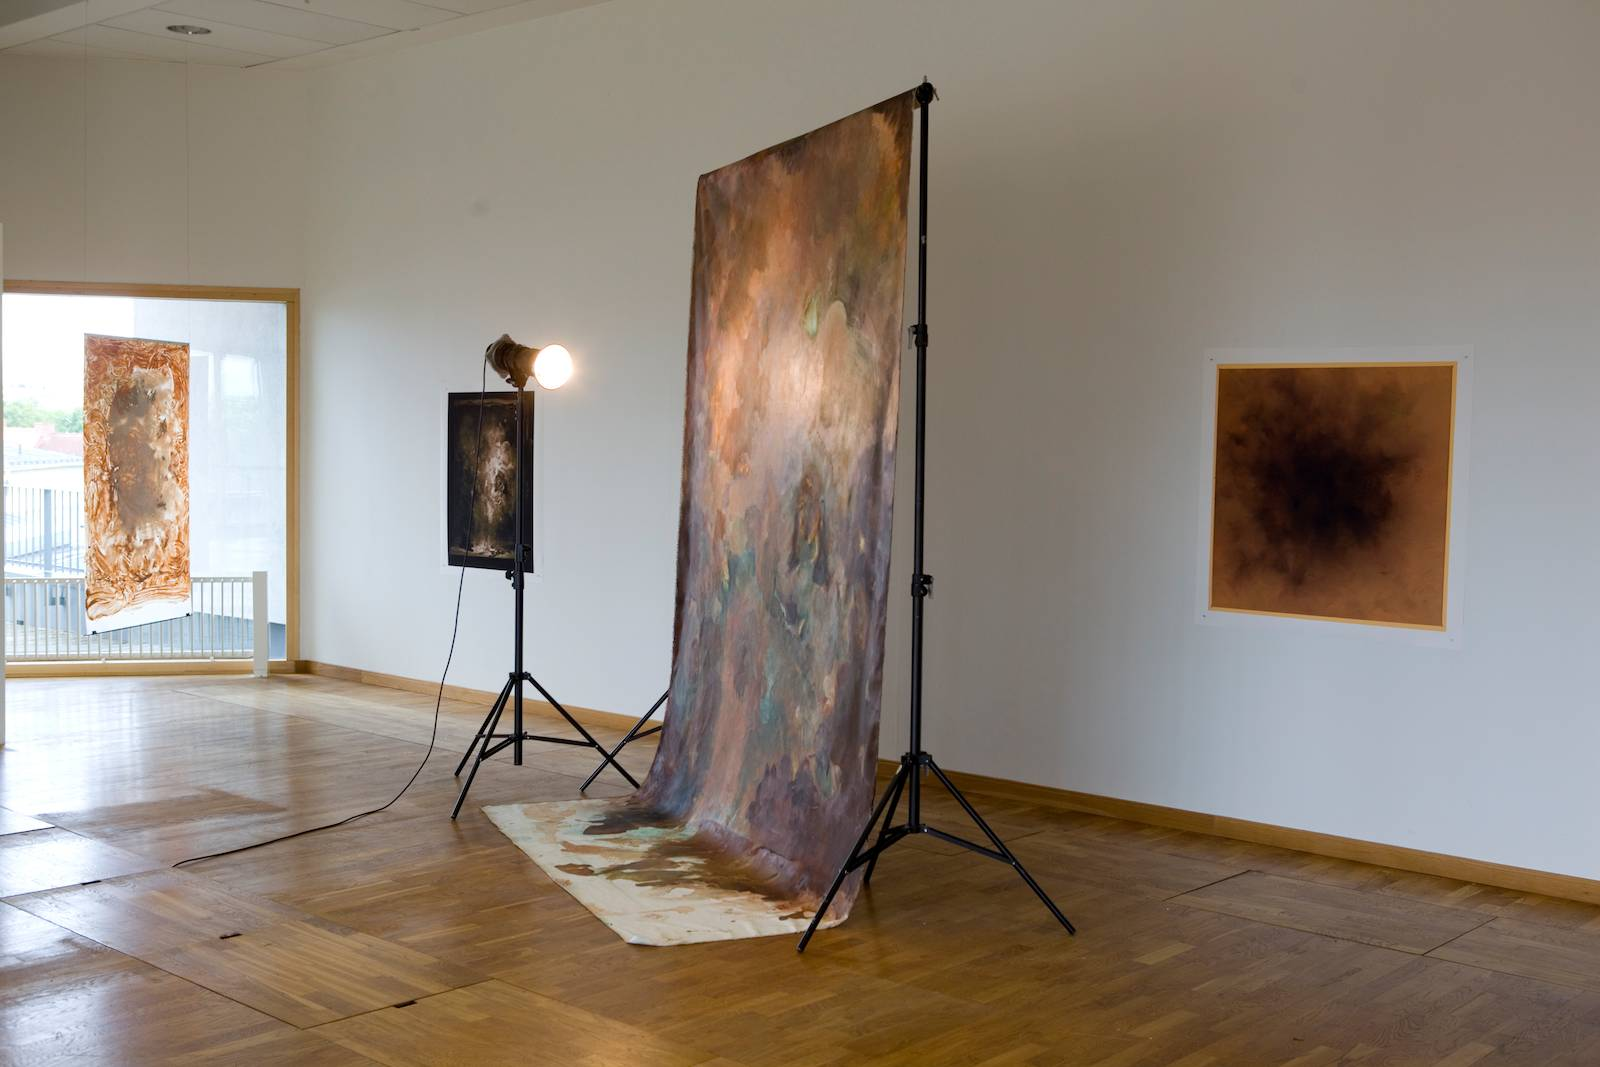 """Installation view """"Outside the Sun is Shining and the Fat Lady Dances"""", Examination show, Konradsberg, Stockholm, 2013"""